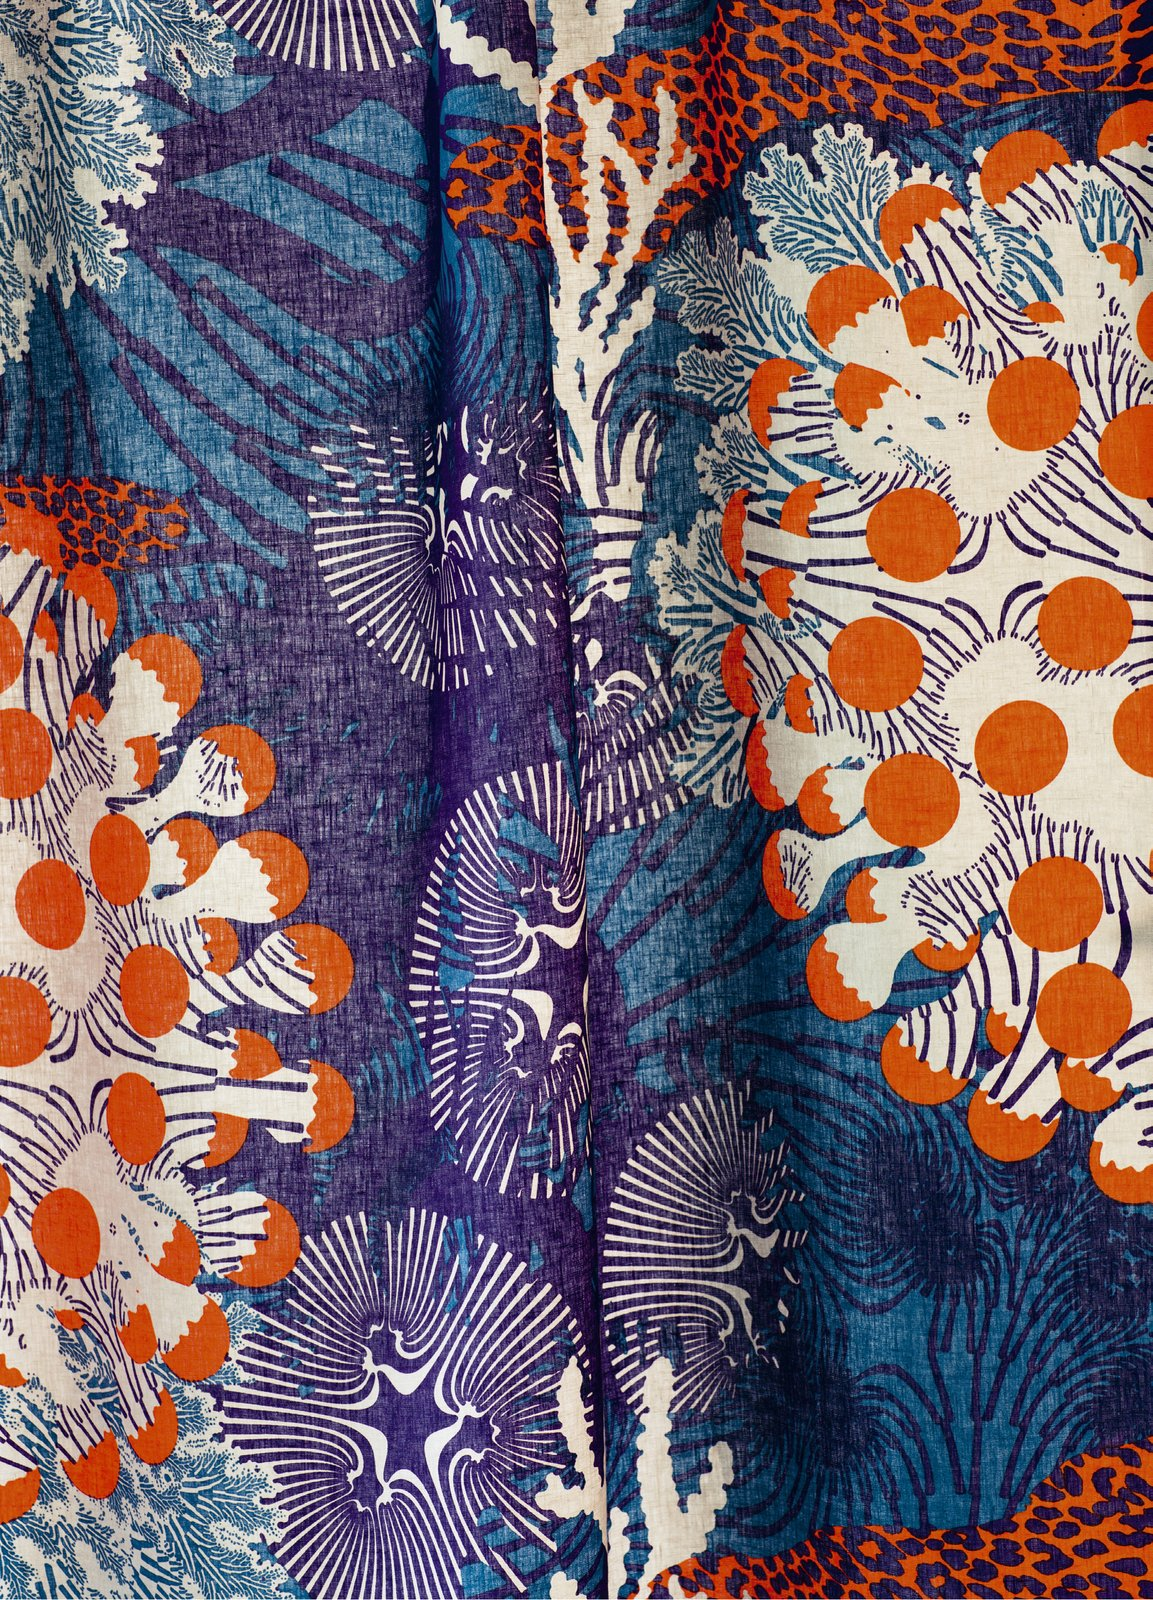 The Merivuokko print features forms that resemble sea anemones.  Marimekko Unveils Sea-Inspired Collection by Allie Weiss